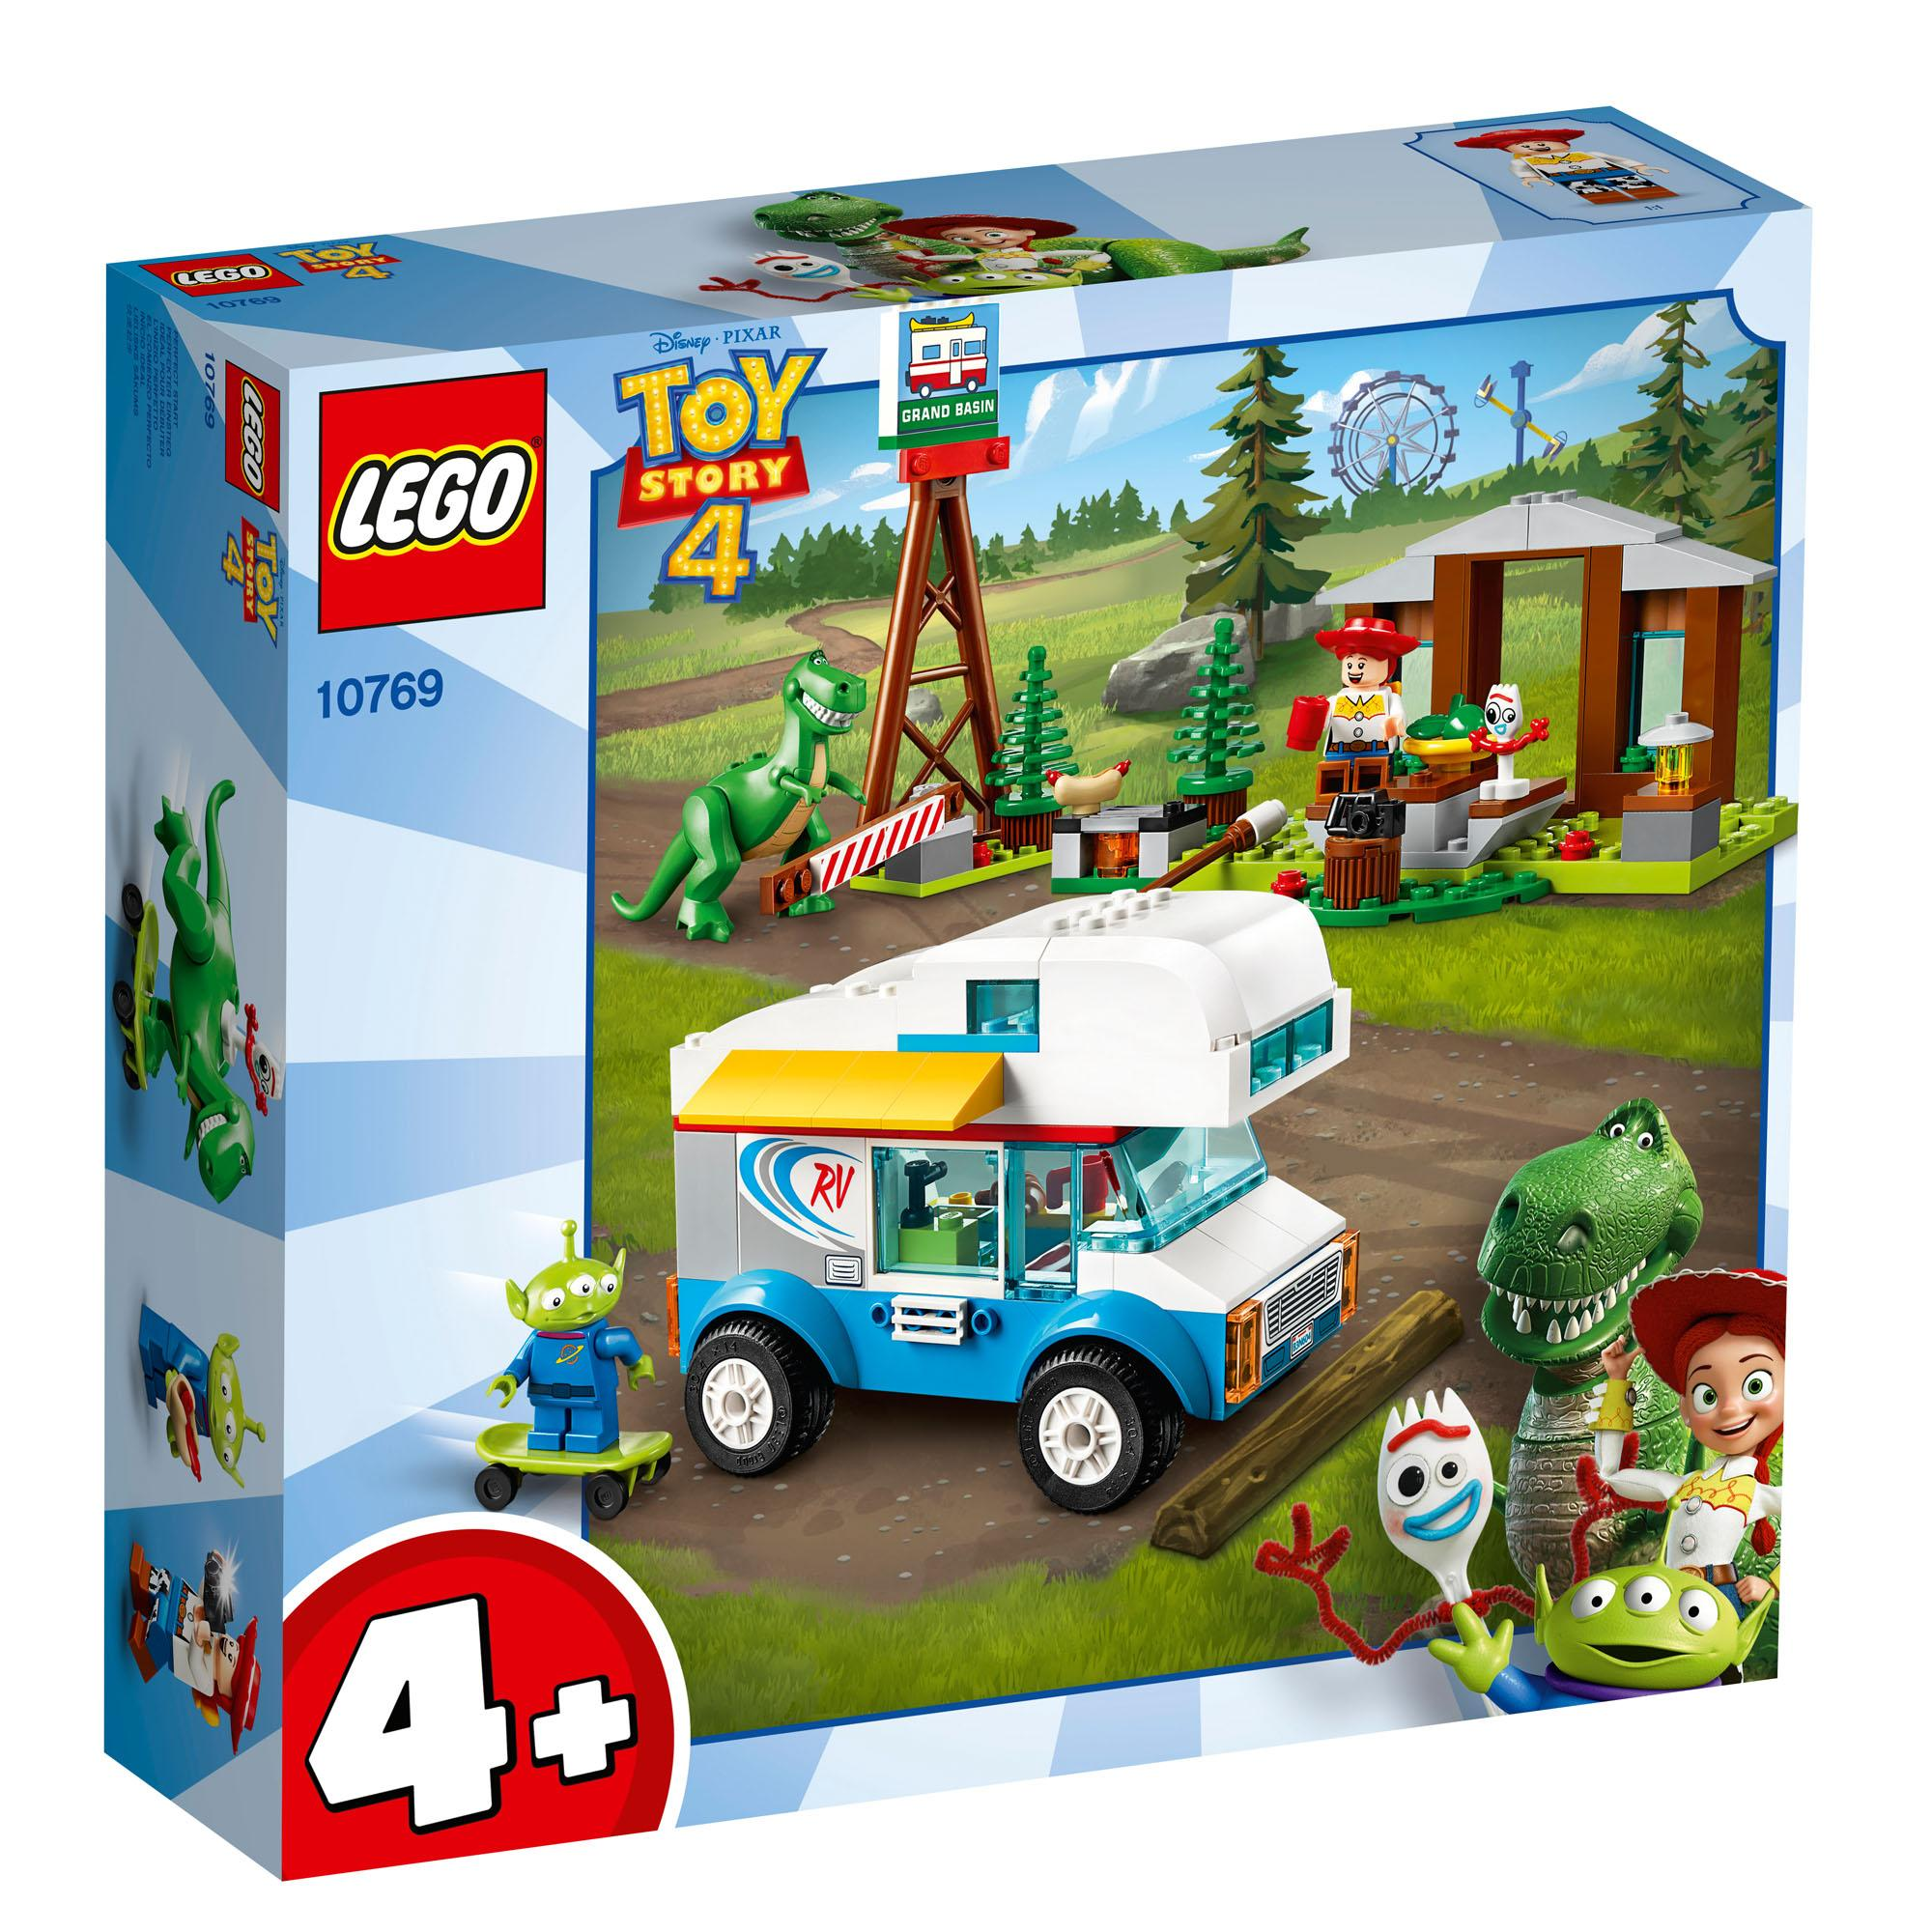 Lego Toy Story RV camper vacation (10769)